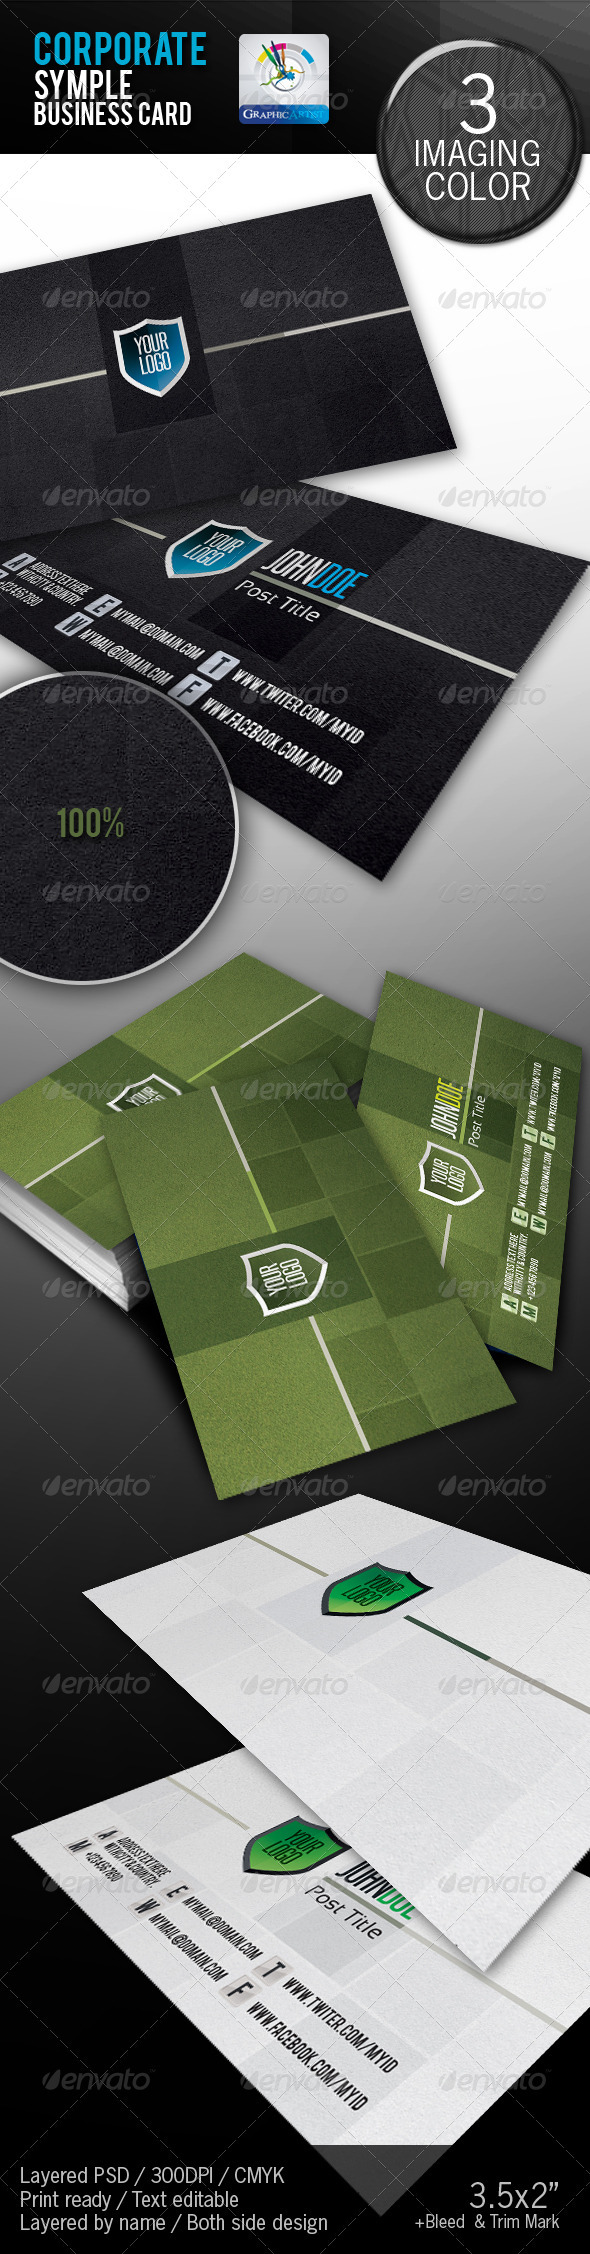 Corporate Creative Business Card - Corporate Business Cards